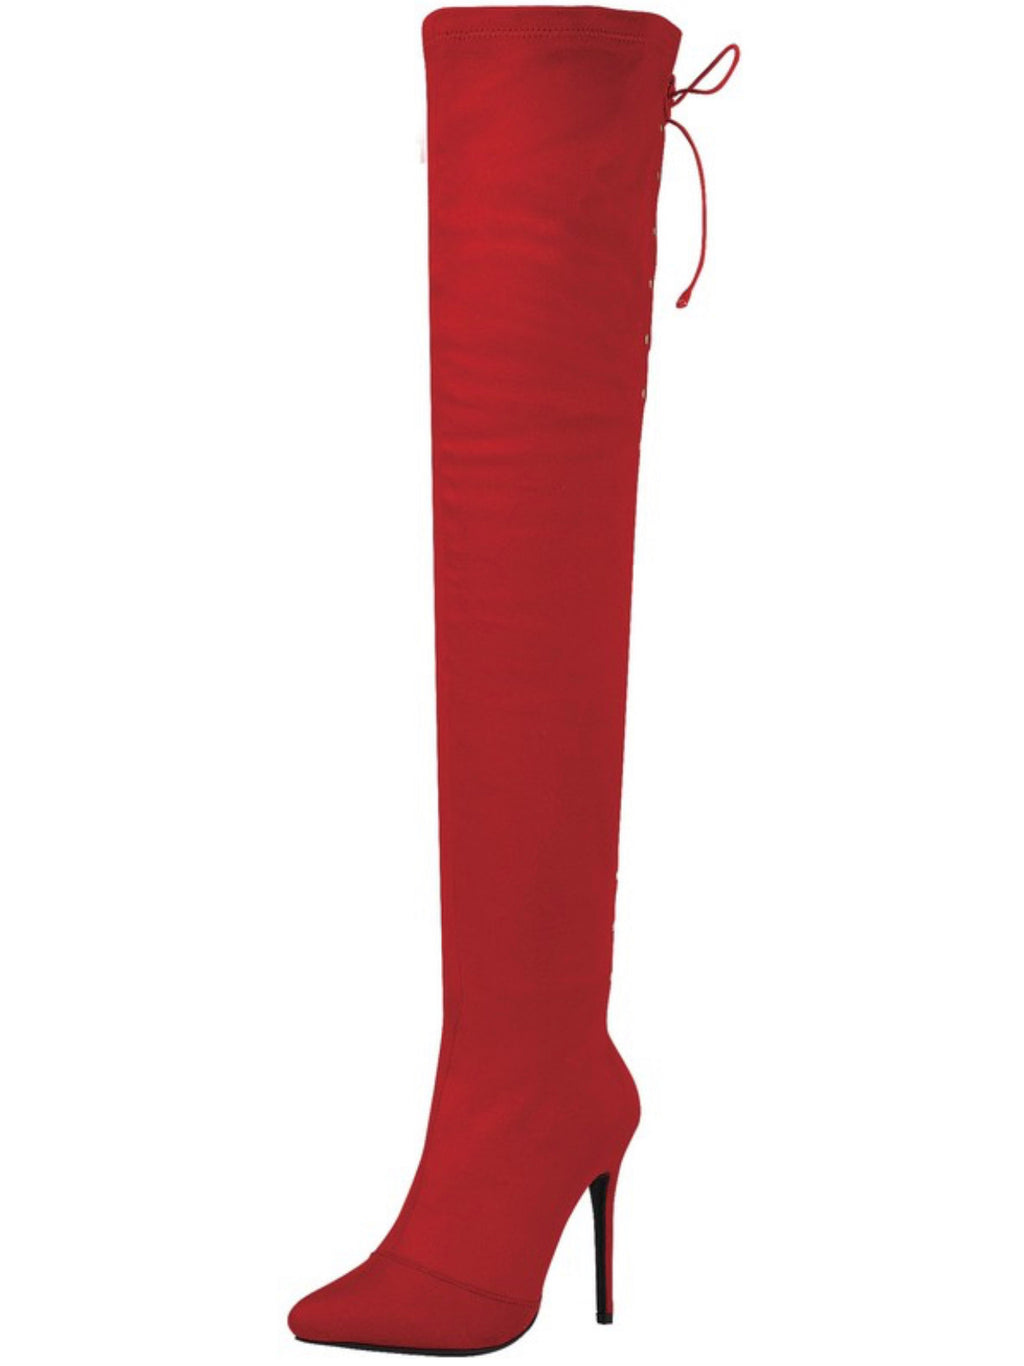 """Ariana"" Red High Thigh Lace Up Boot - Mint Leafe Boutique"